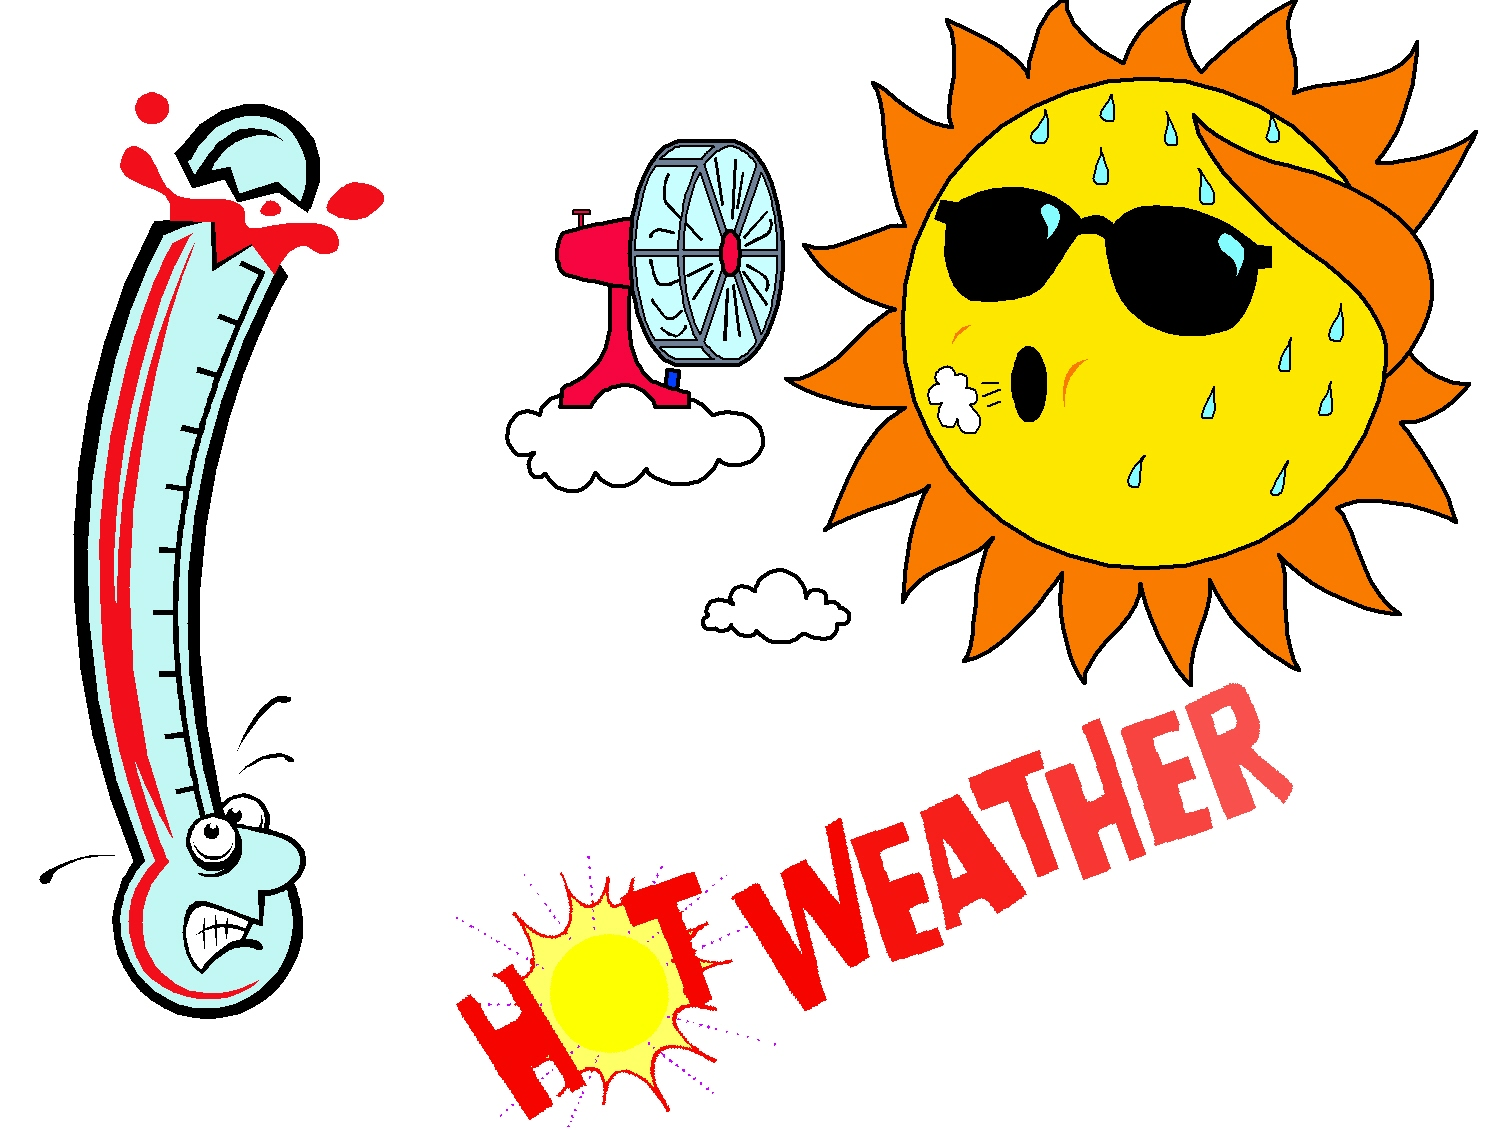 What Is The Usual Summer High Temperatur-What Is The Usual Summer High Temperature Where You Live 92 To 95-3